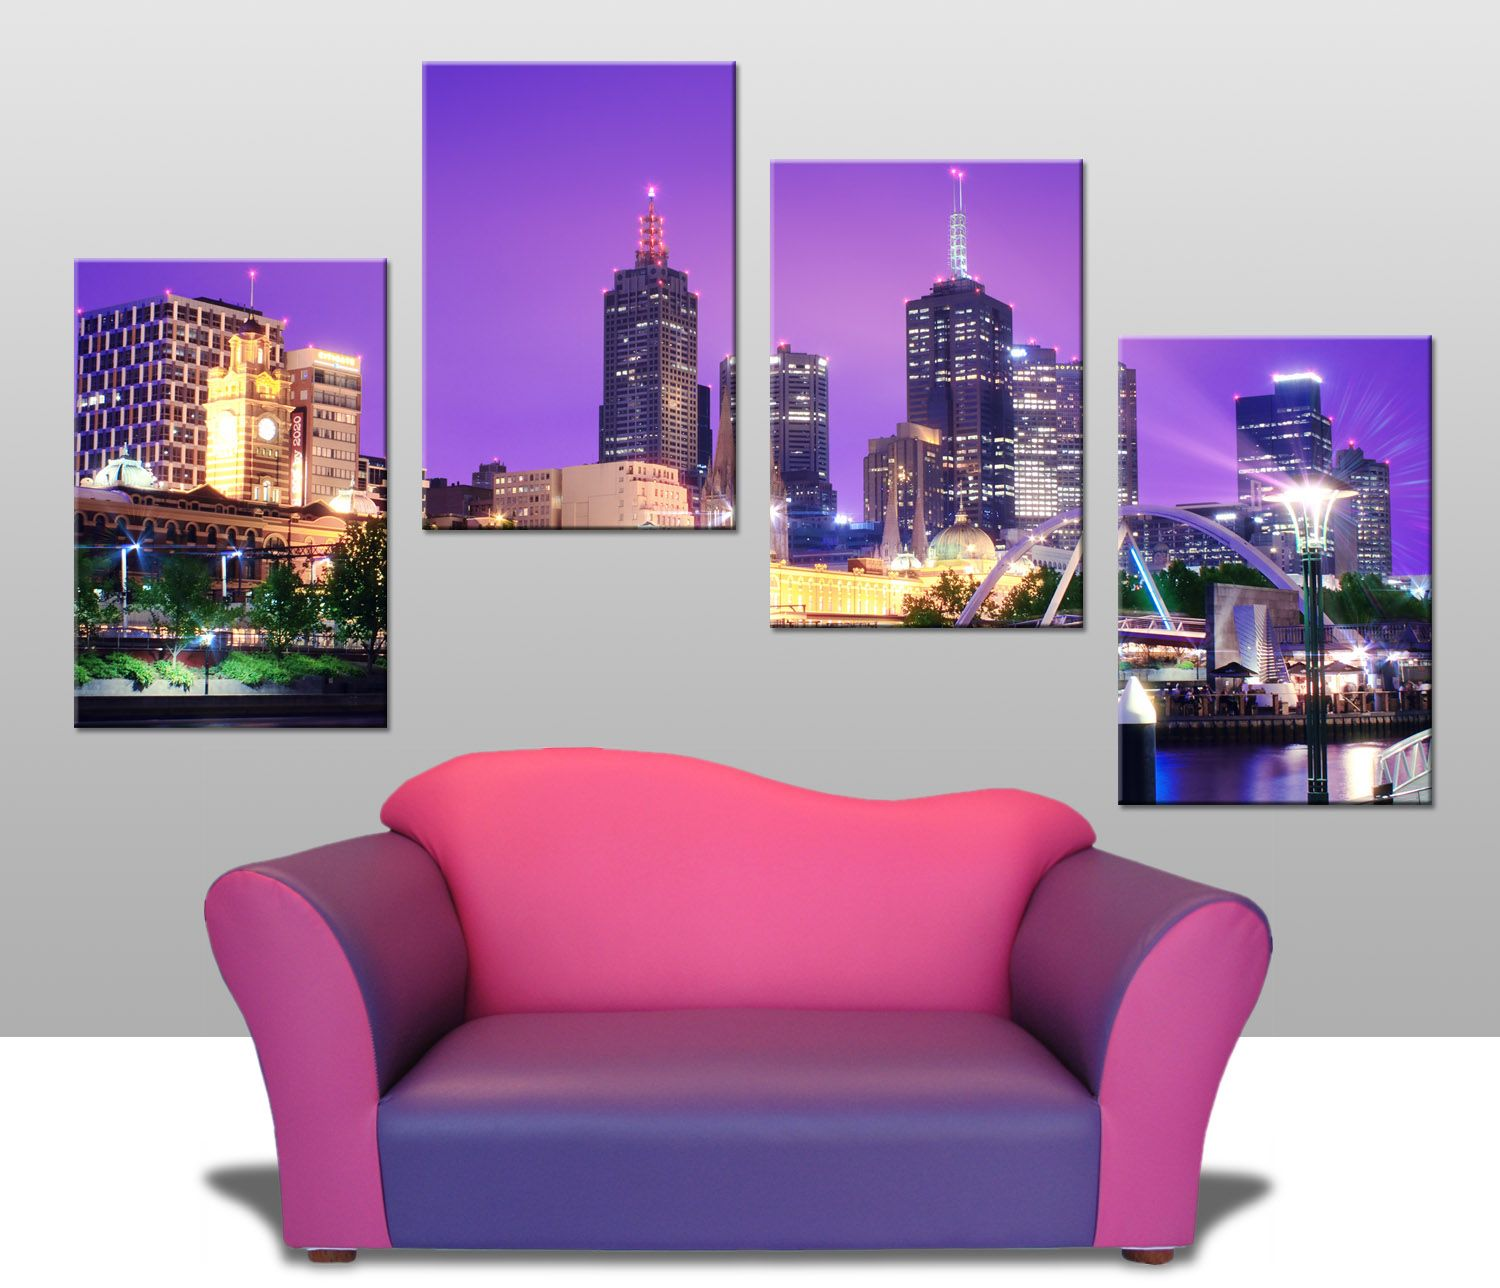 This 4 Panel Split Canvas Features A Colourful Photograph Of